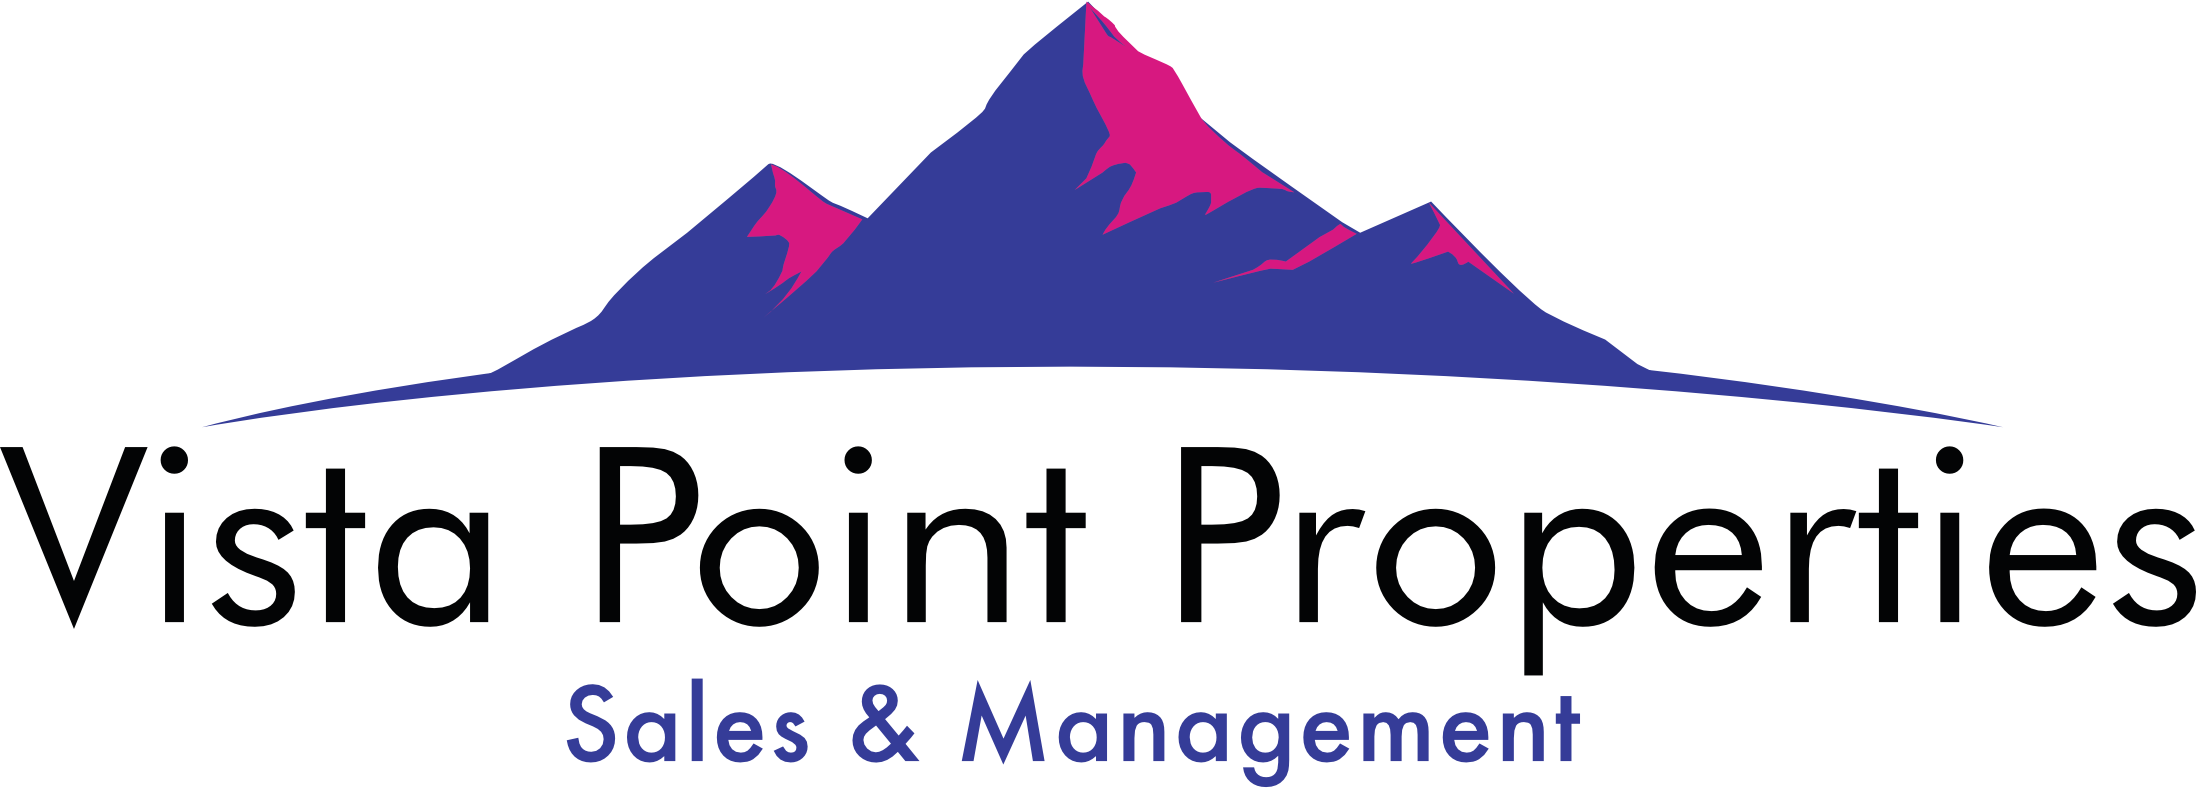 Vista Point Properties |   Marketing